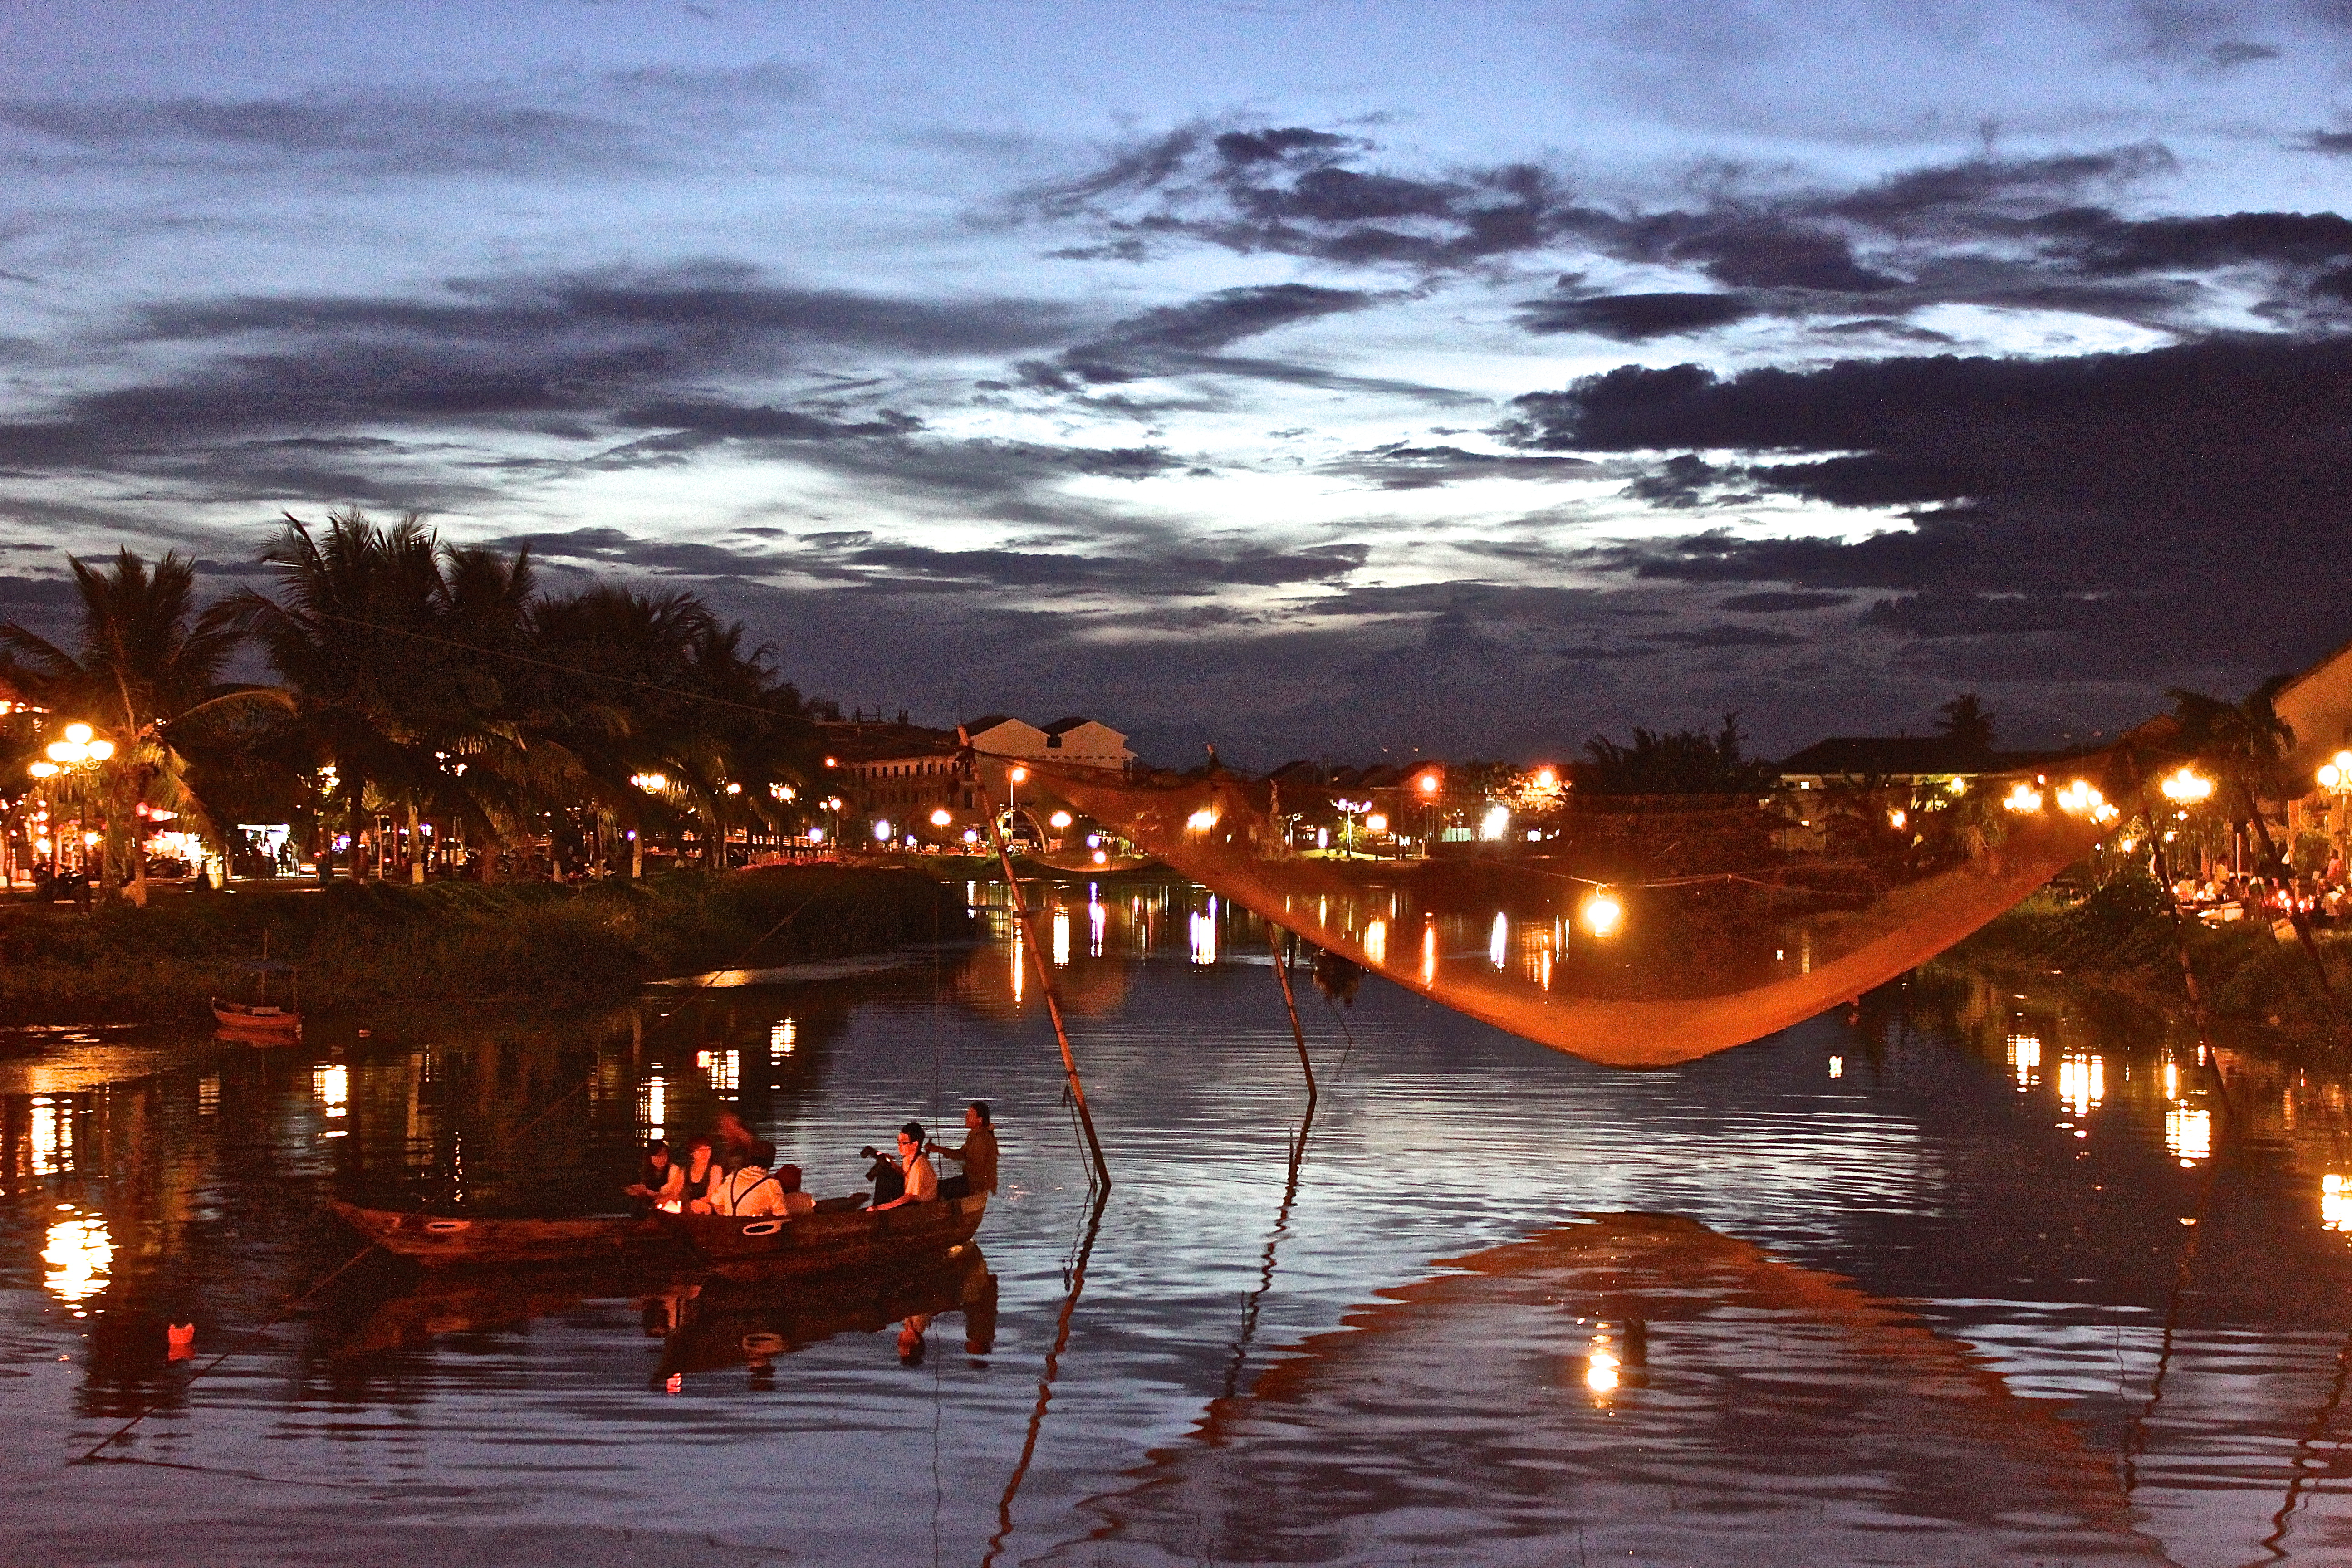 The Thu Bon river and its tributaries, cutting through Hoi An, were an ancient transport network for the Cham Kingdom. © Tara Shahani